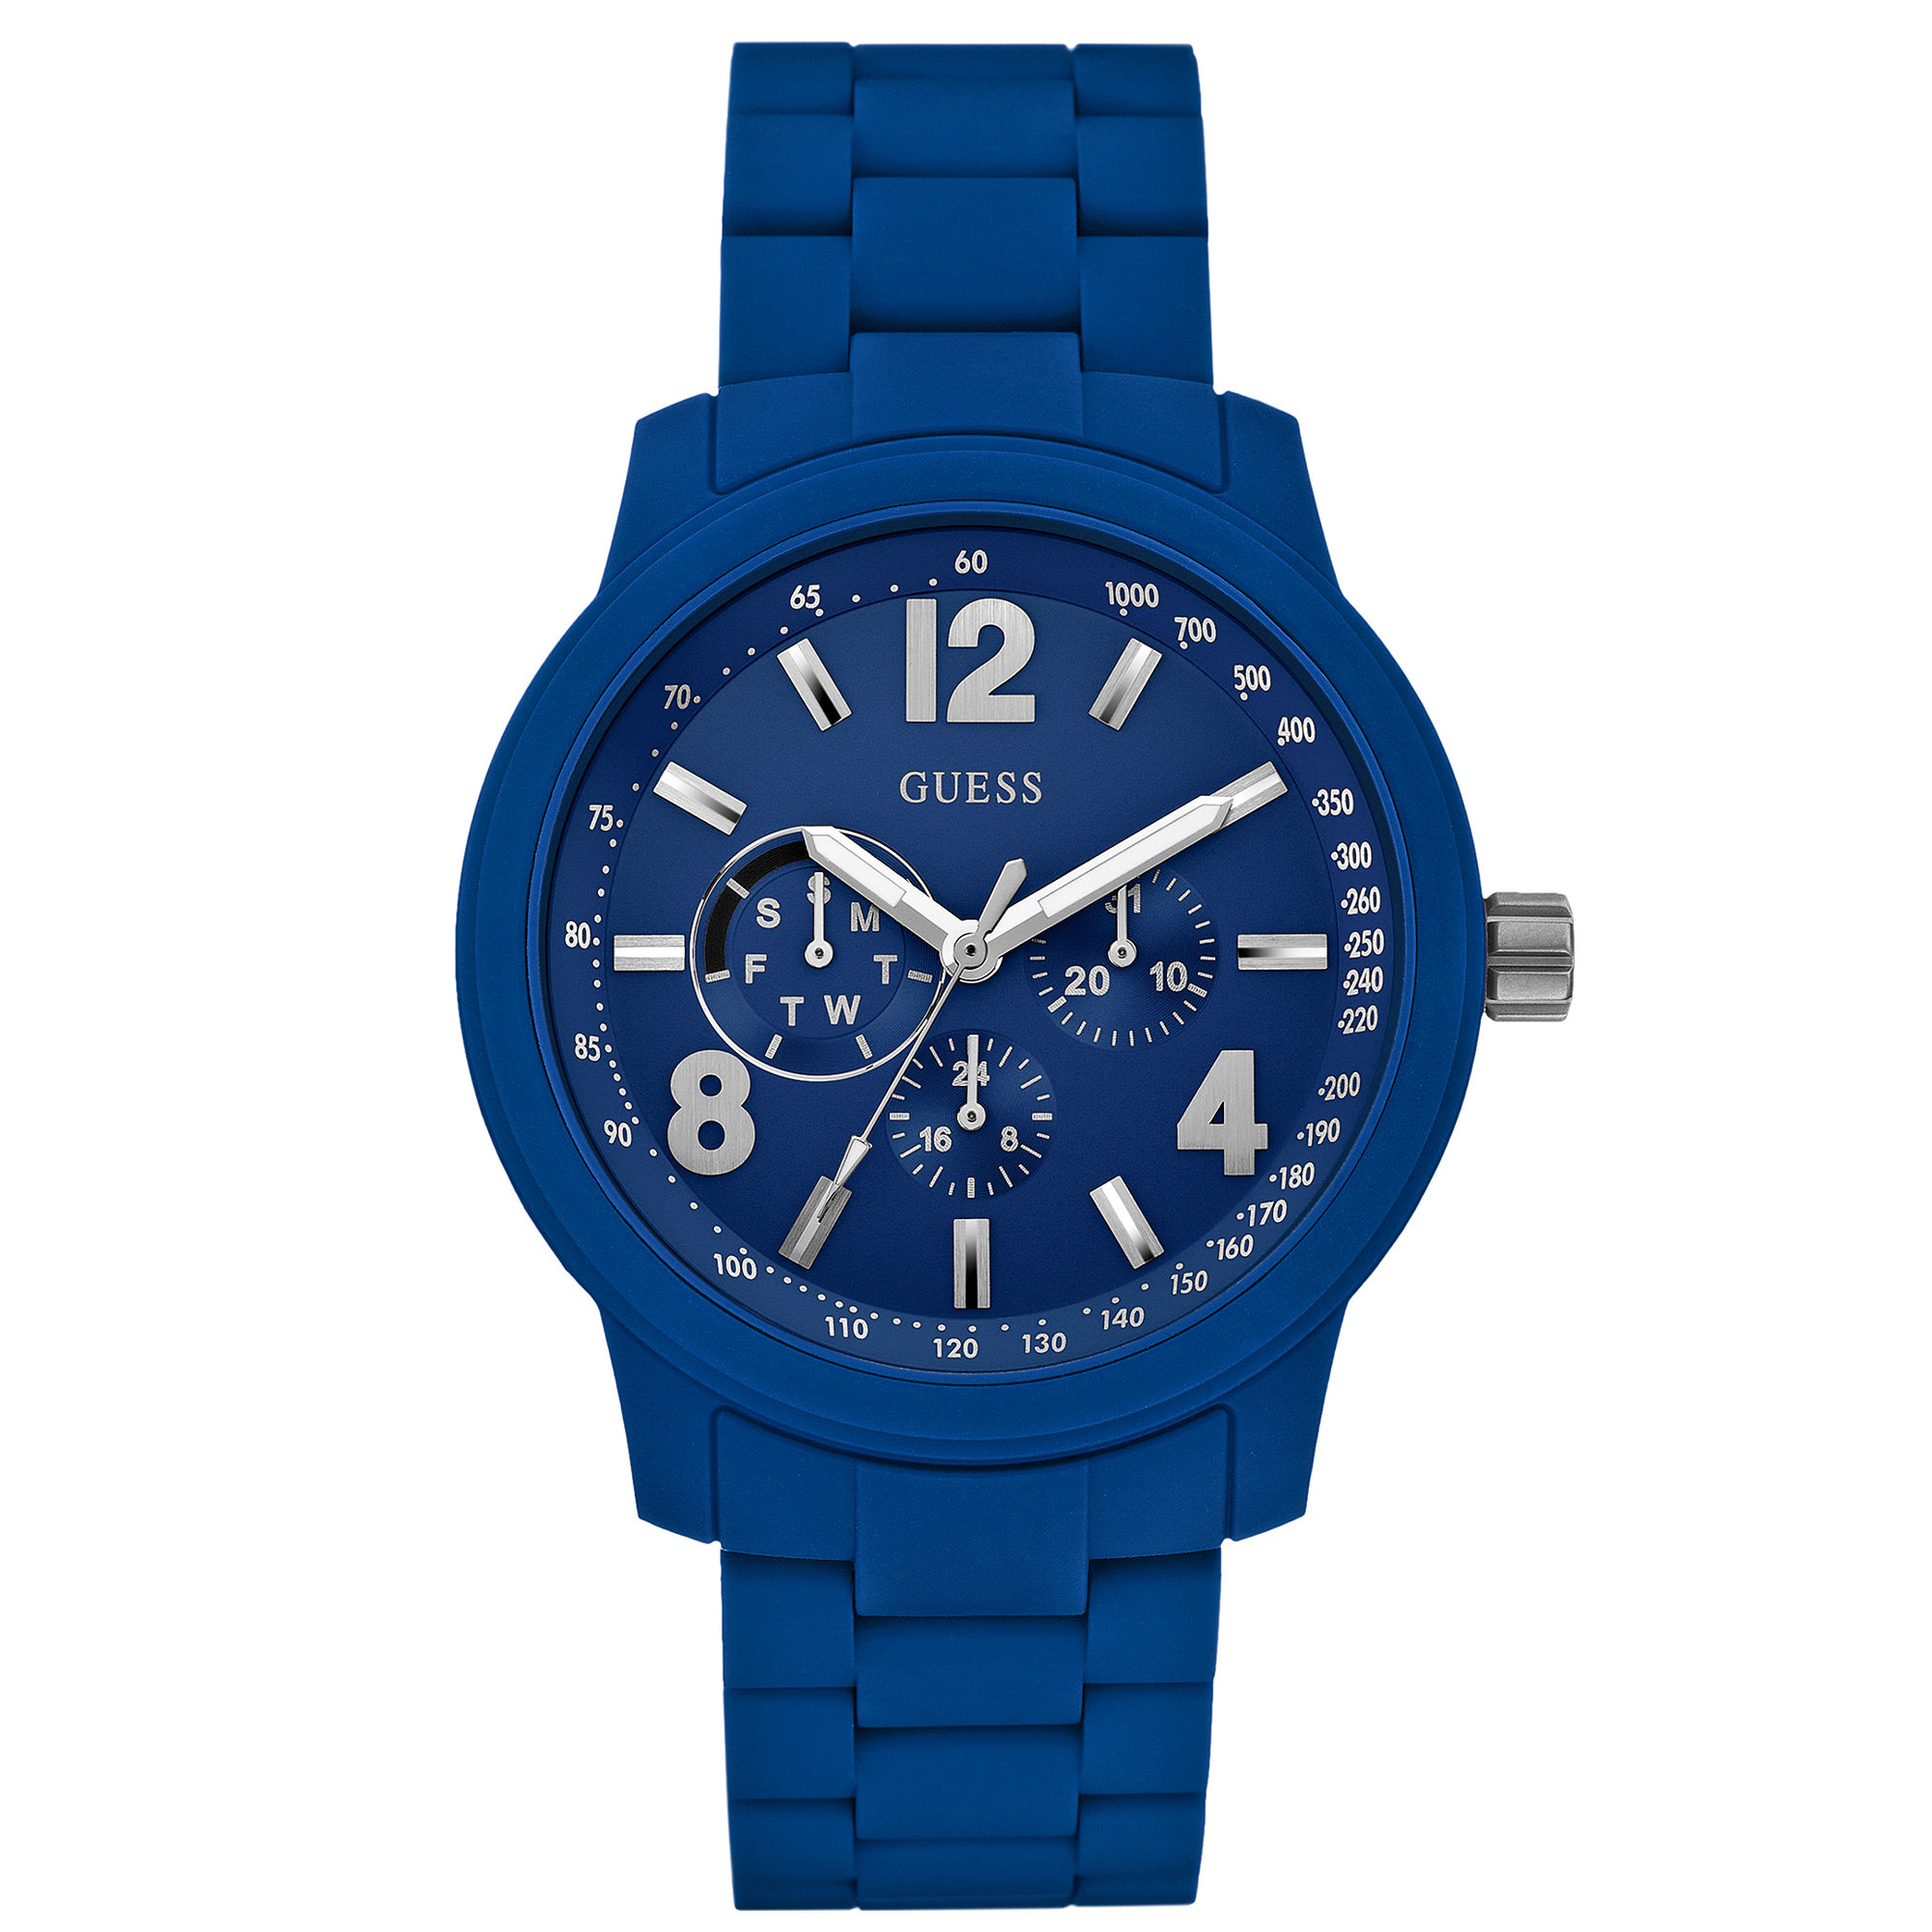 Guess Watch Mens Blue Polyurethanewrapped Steel Bracelet ...